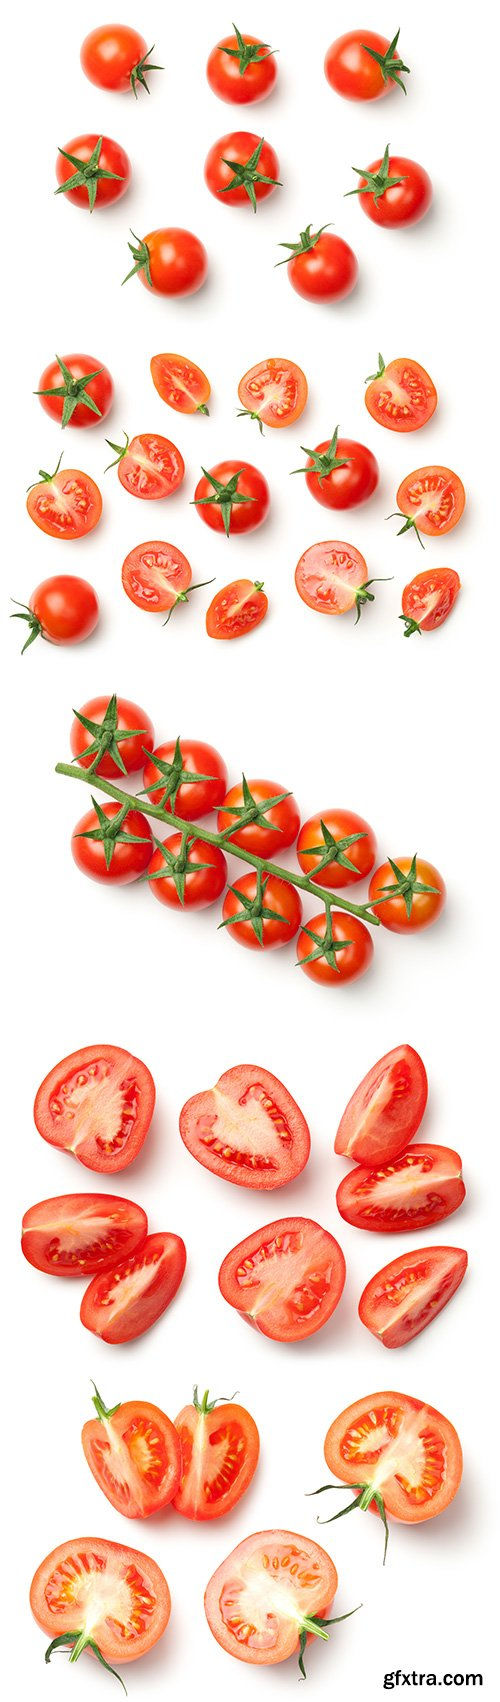 Cherry Tomatoes Isolated - 6xJPGs